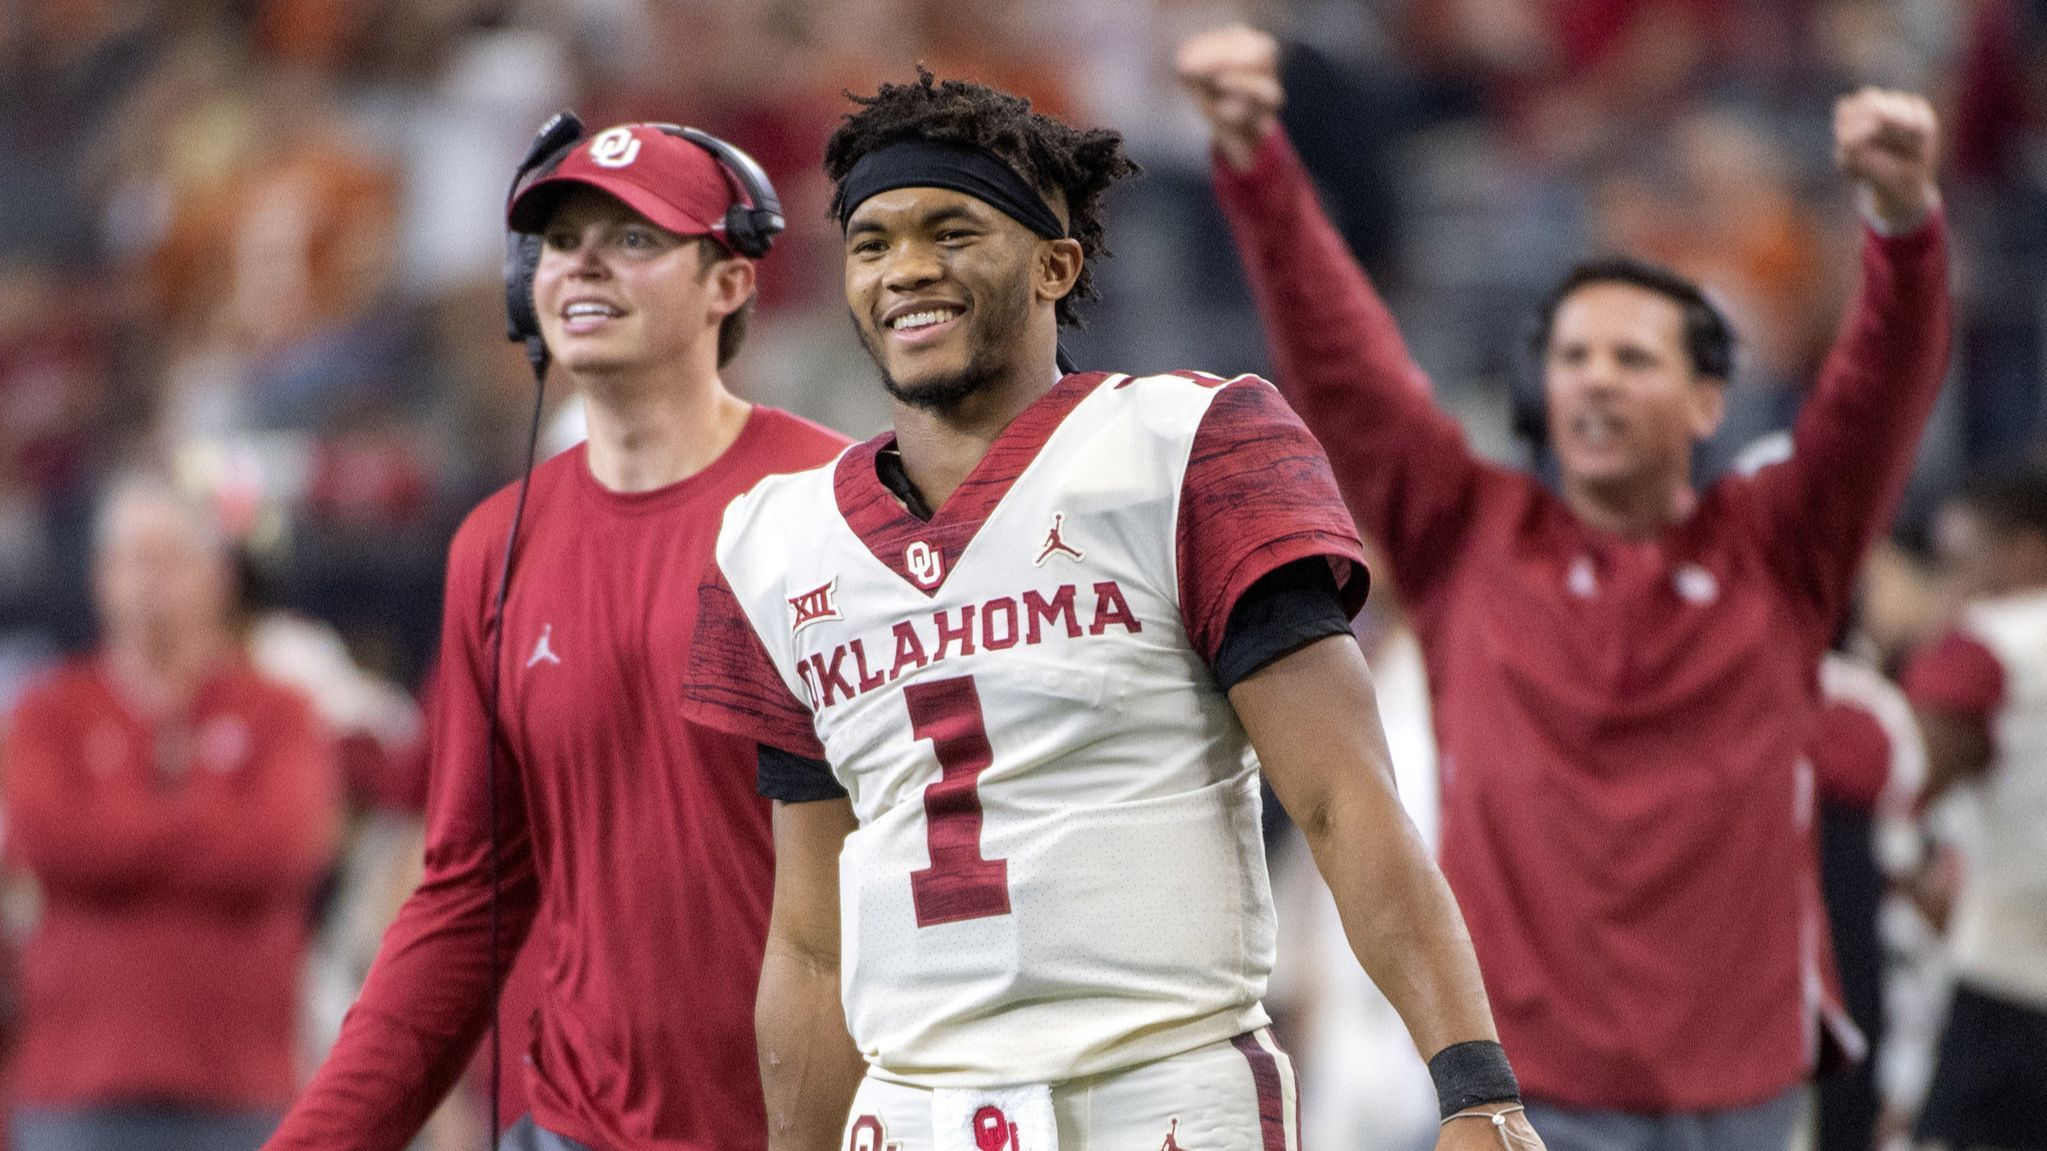 In short order, Kyler Murray could be the quarterback prize of the NFL draft